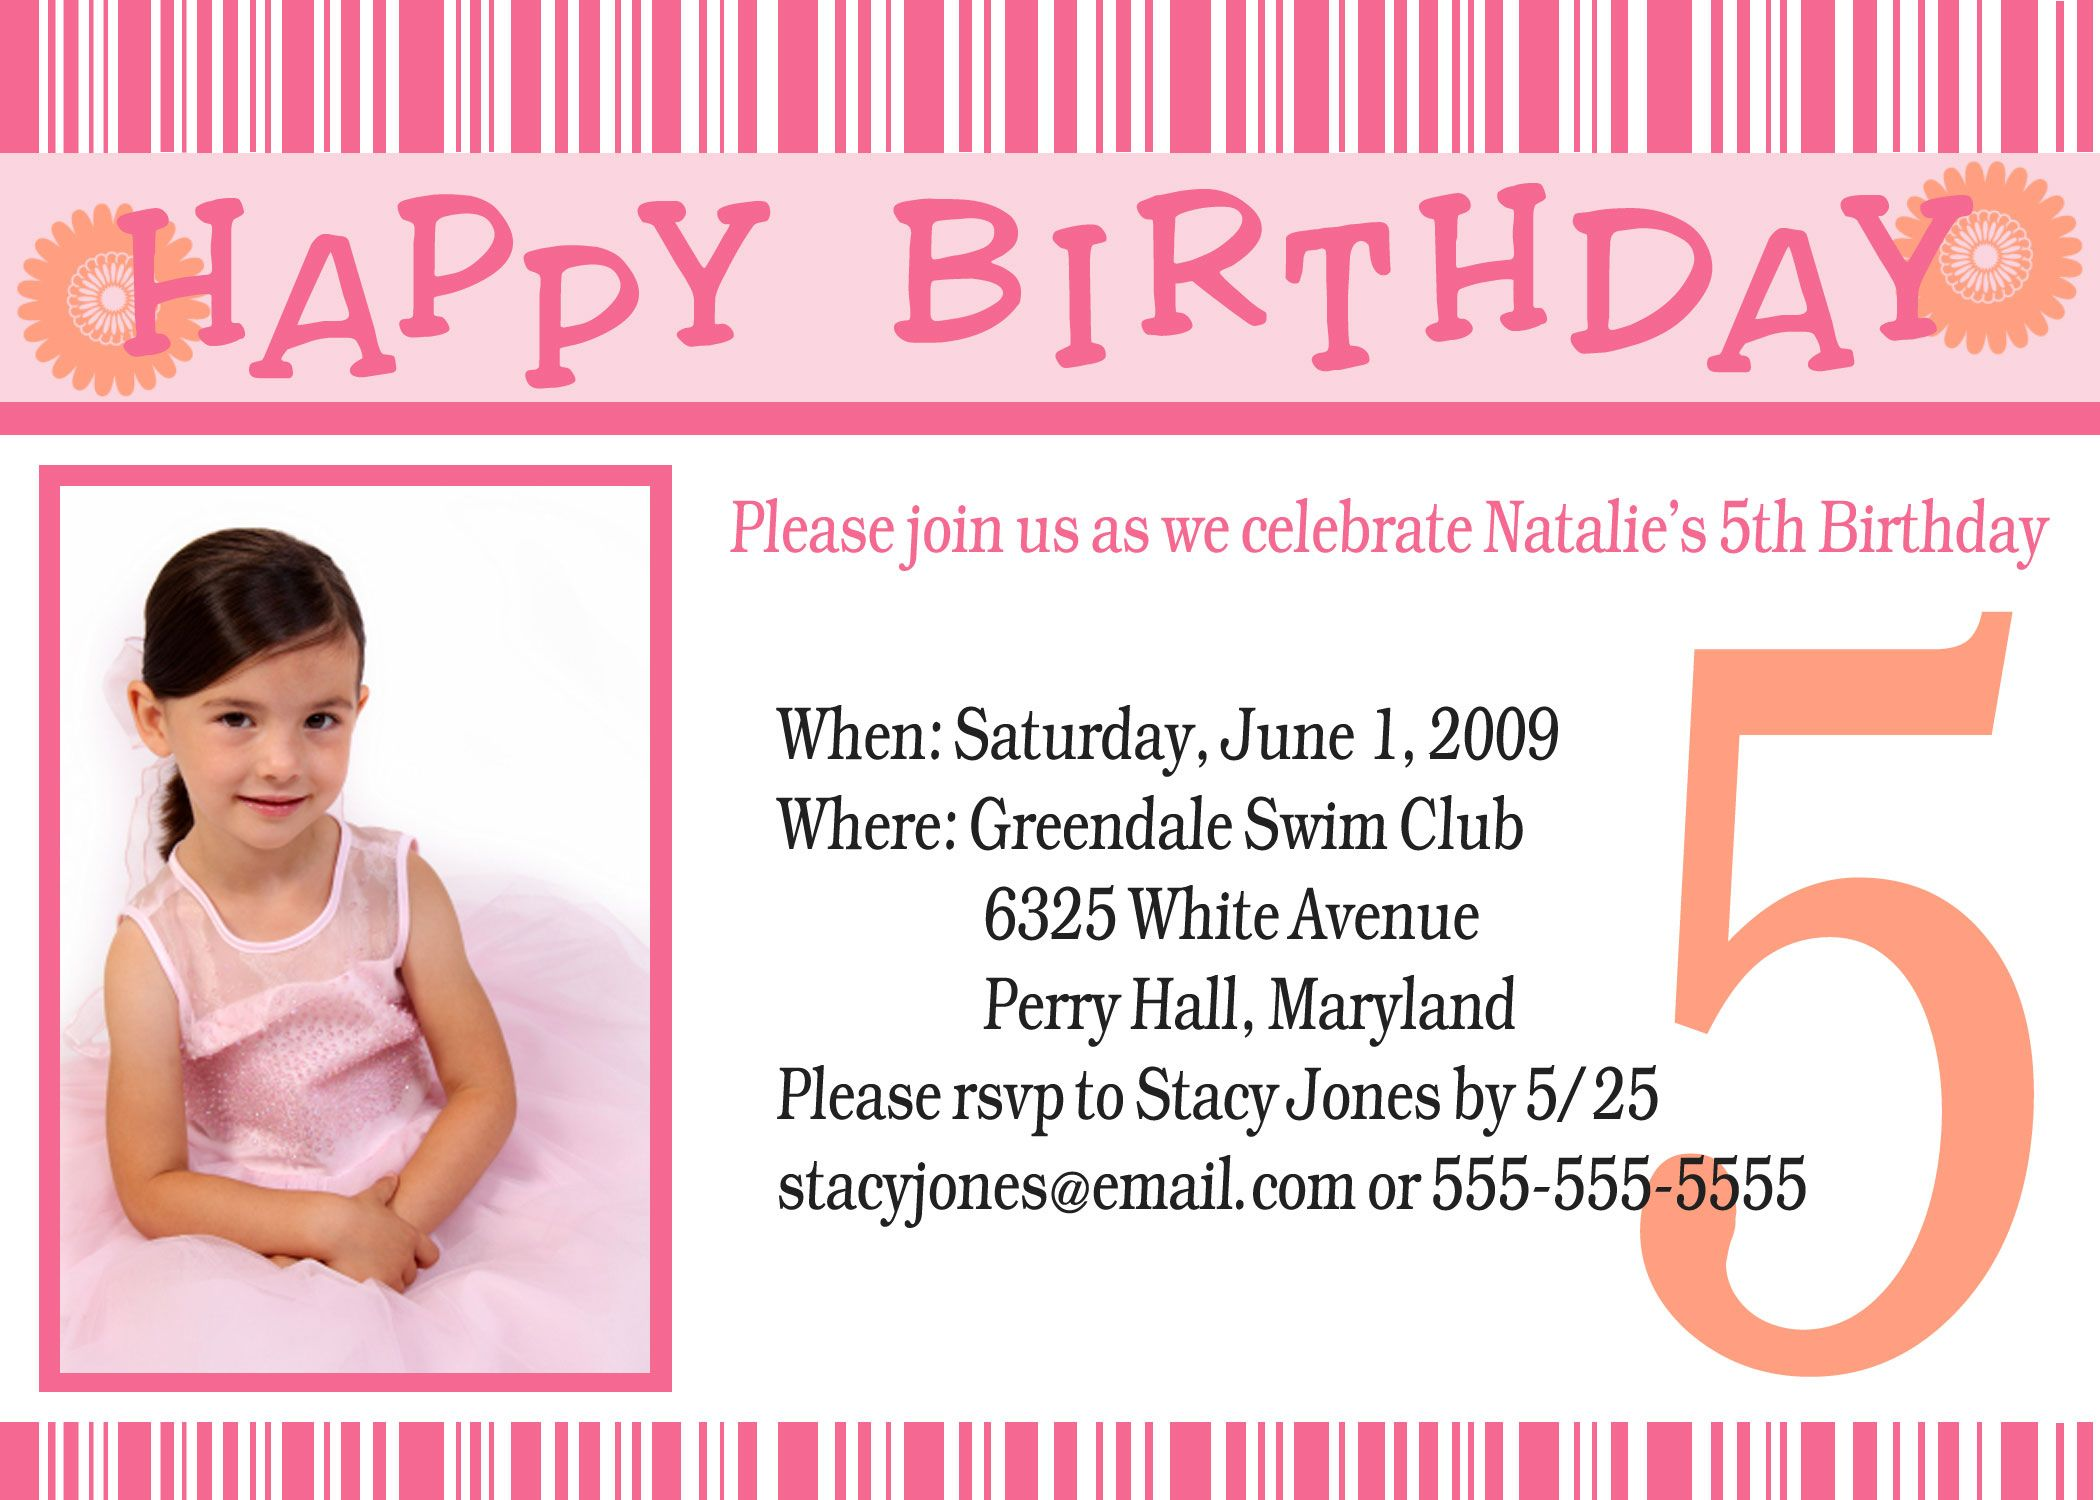 Birthday Party Invitations | Invitation Templates | Templates ...